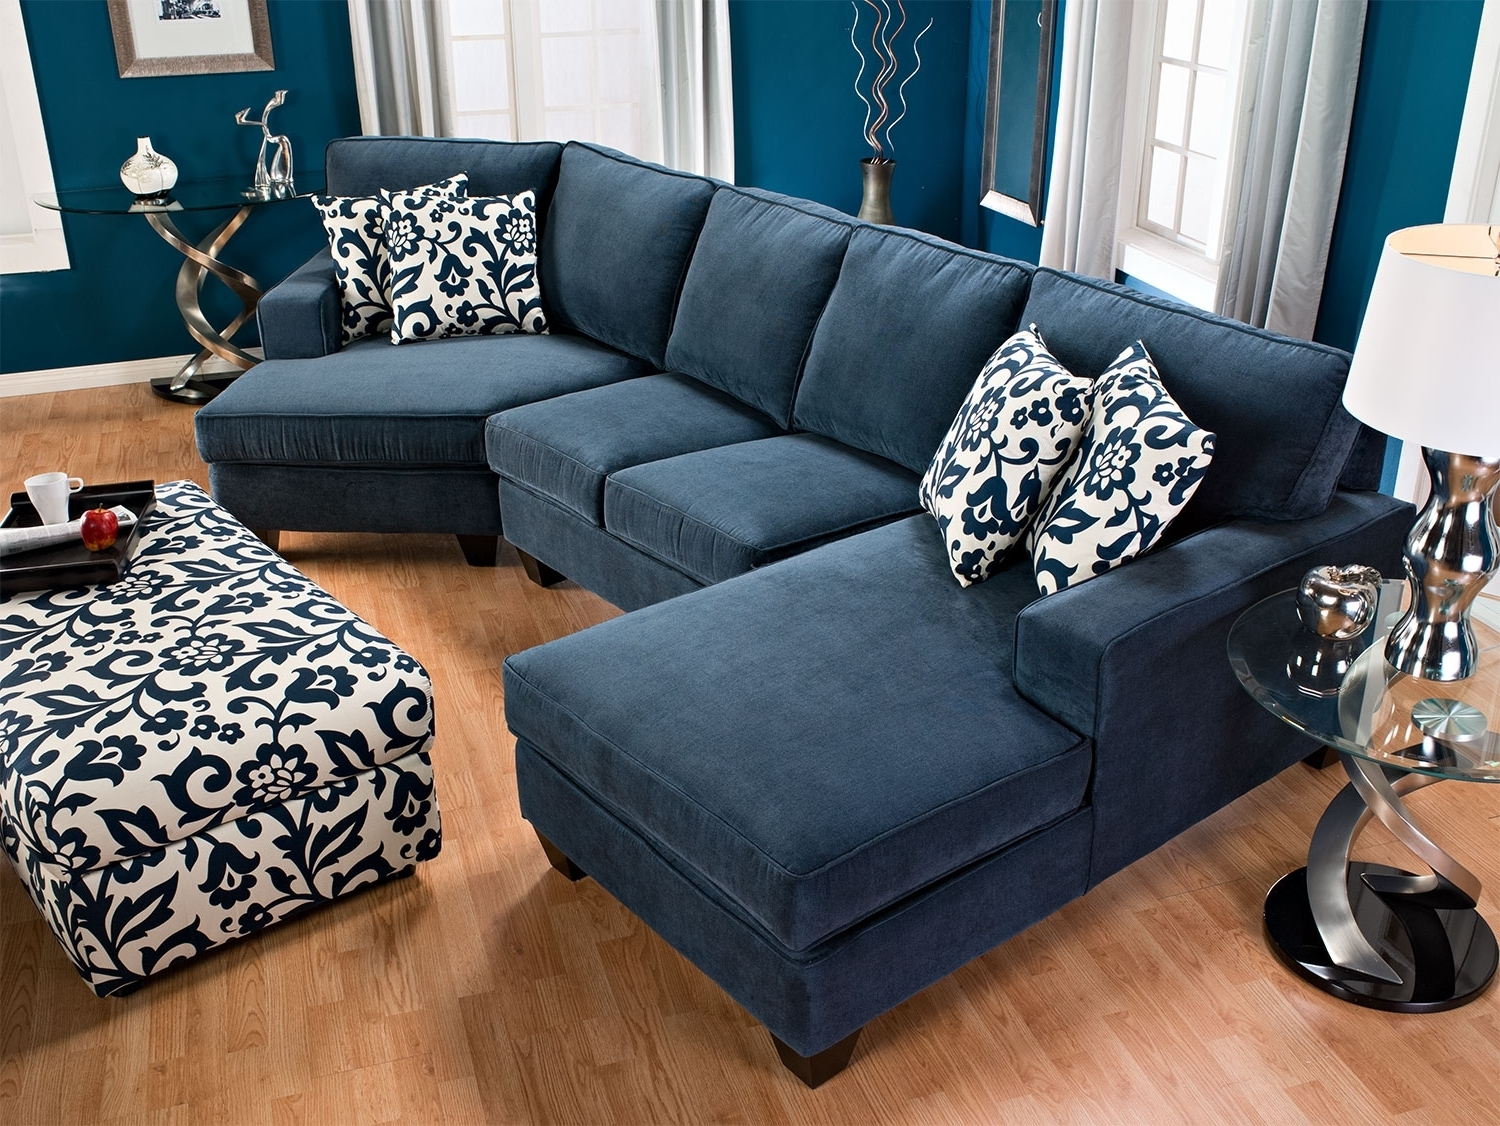 Chenille Sectional Sofa With Chaise – Hotelsbacau Regarding Most Up To Date Blue Sectional Sofas With Chaise (View 9 of 15)